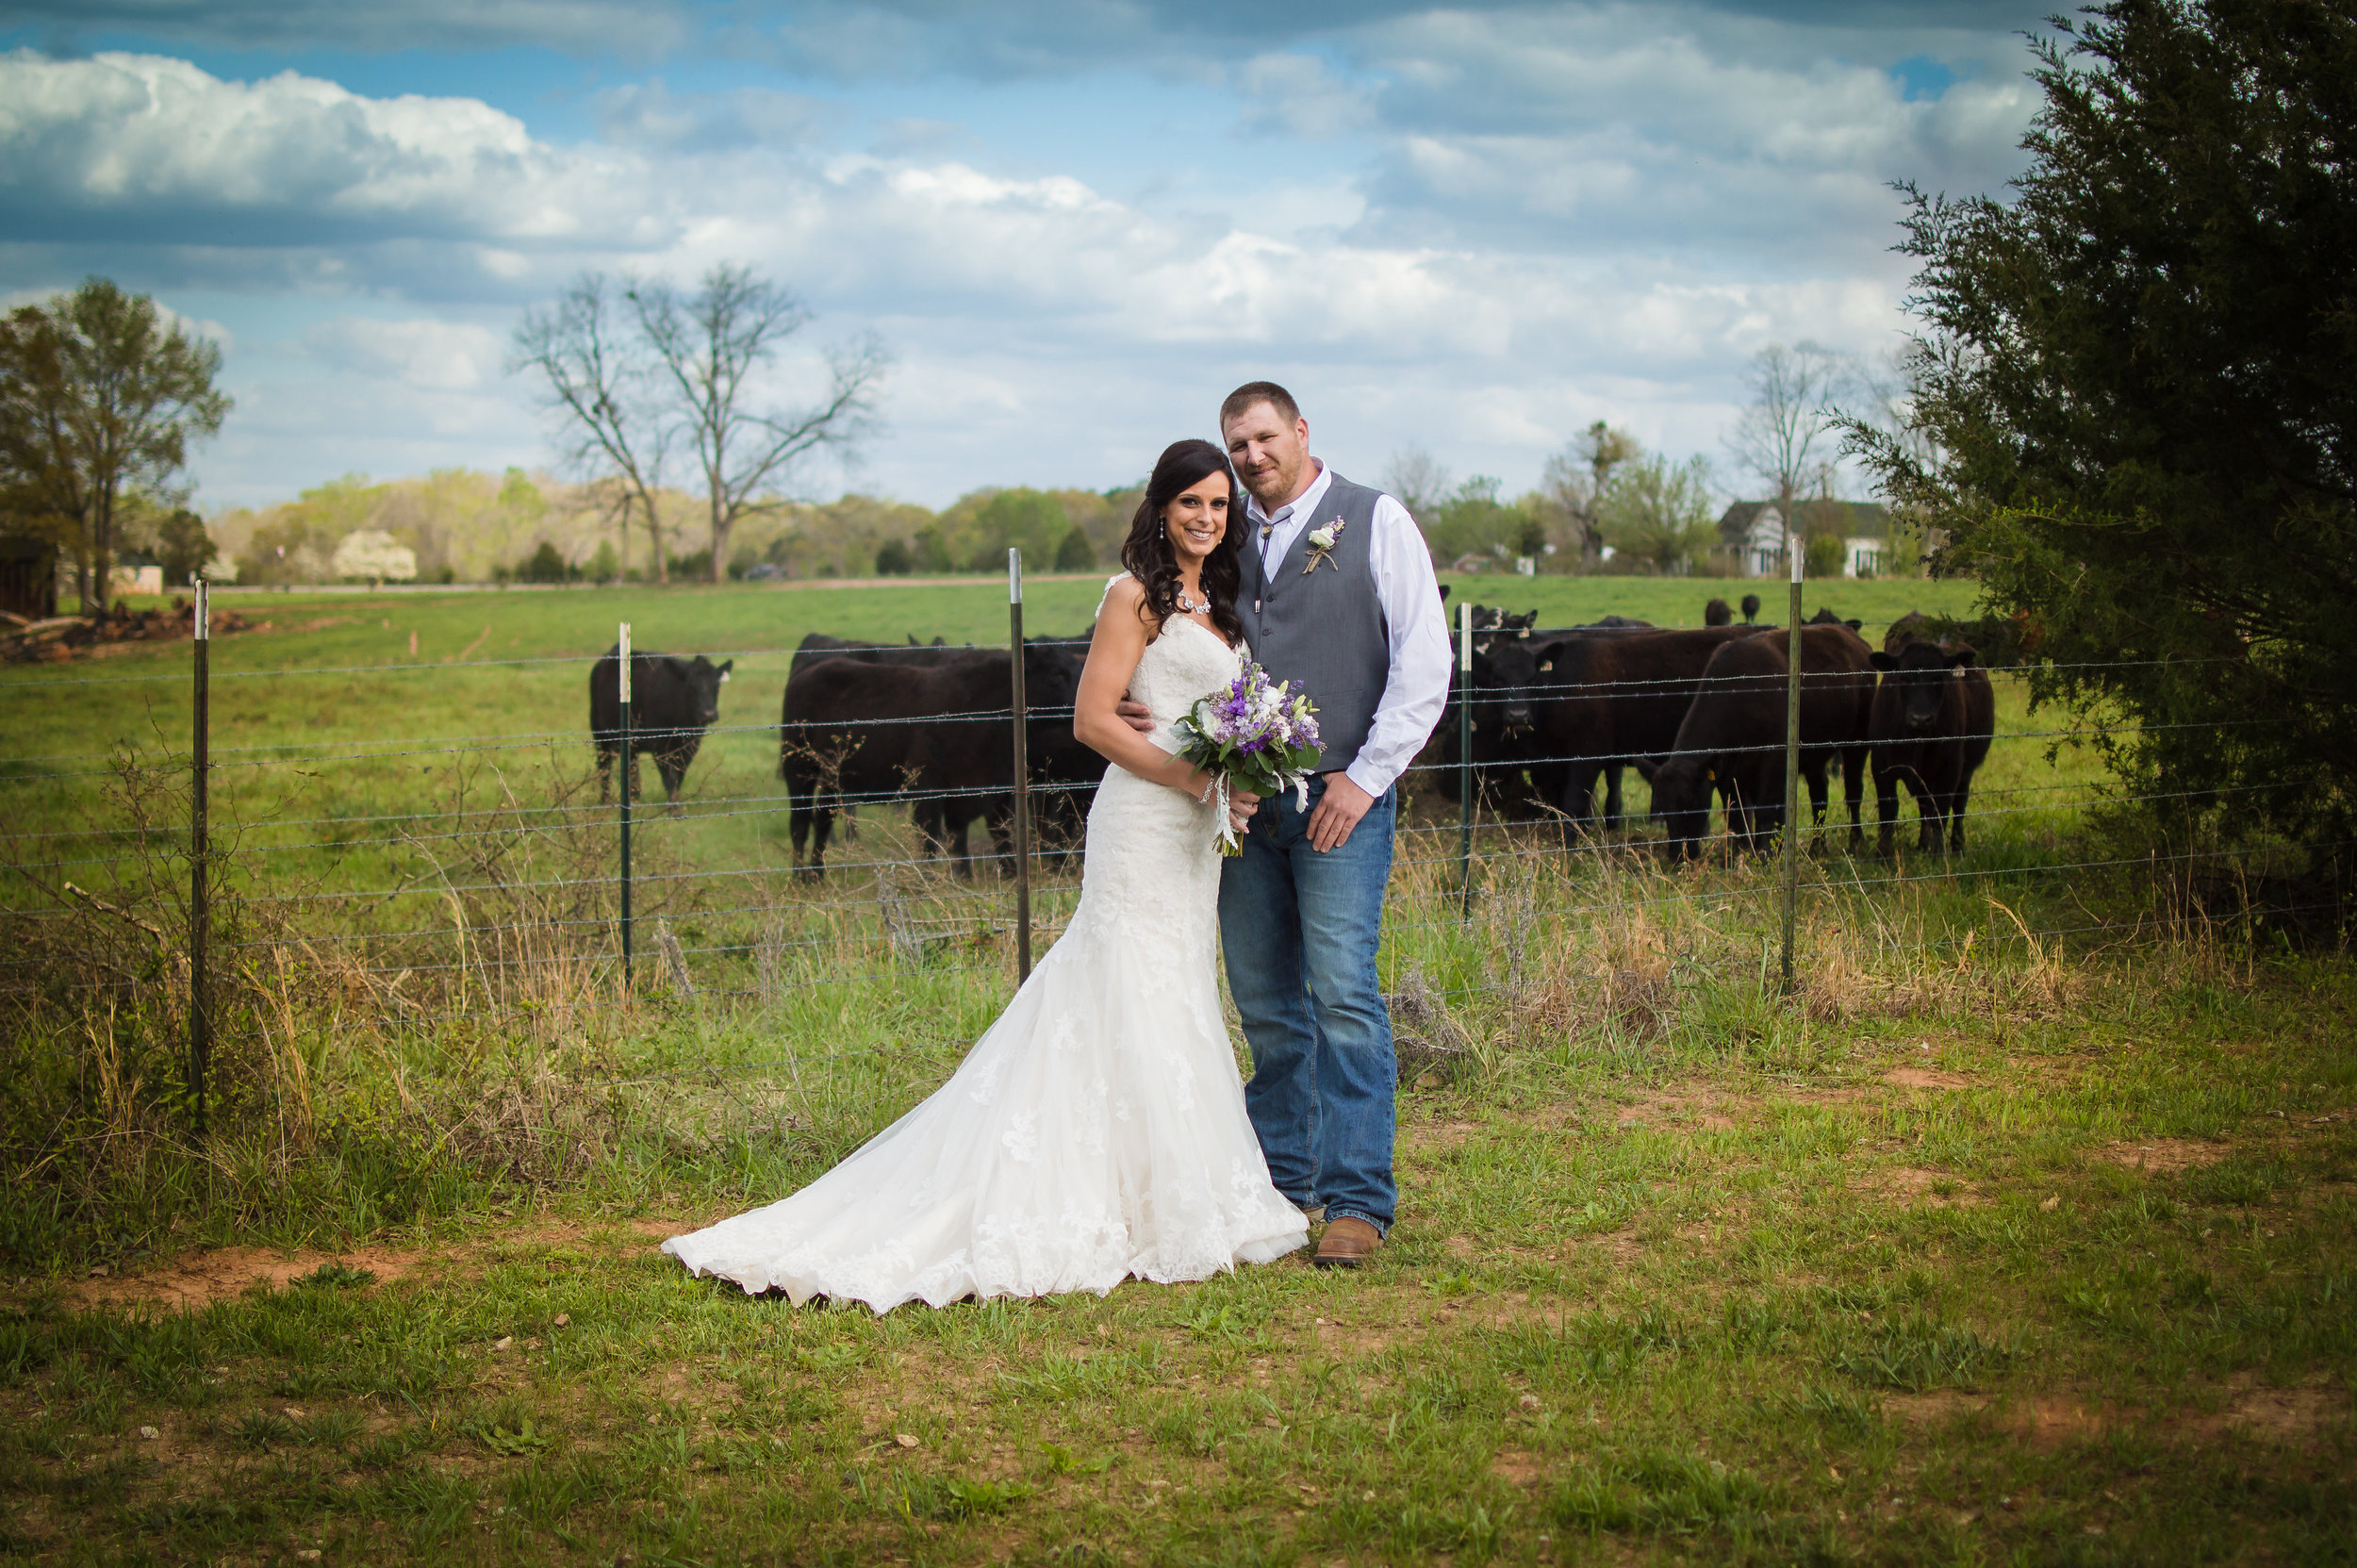 March wedding, photo by Hannah Hensley Photography